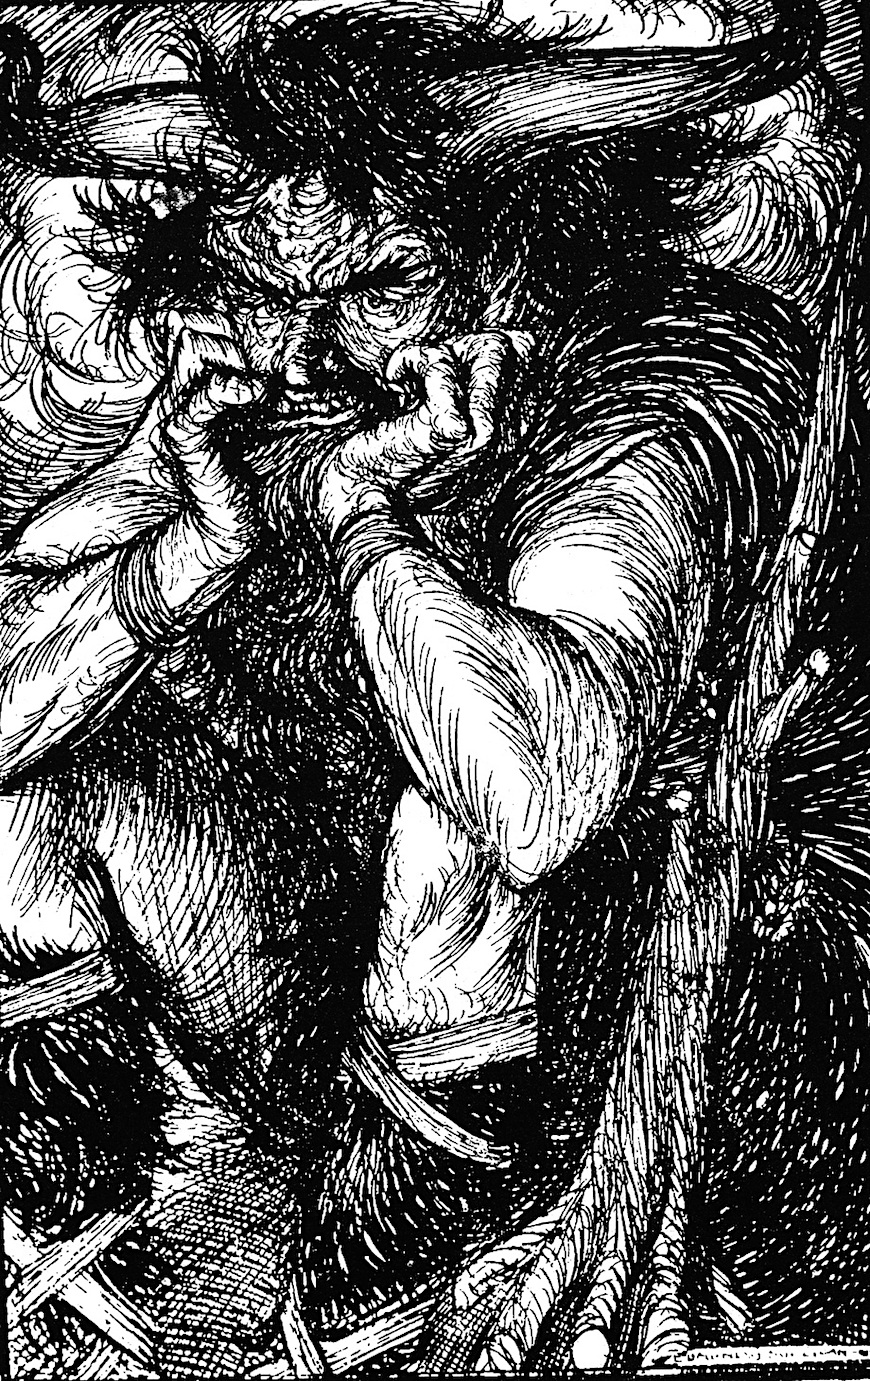 an Edmund J. Sullivan book illustration of a demon